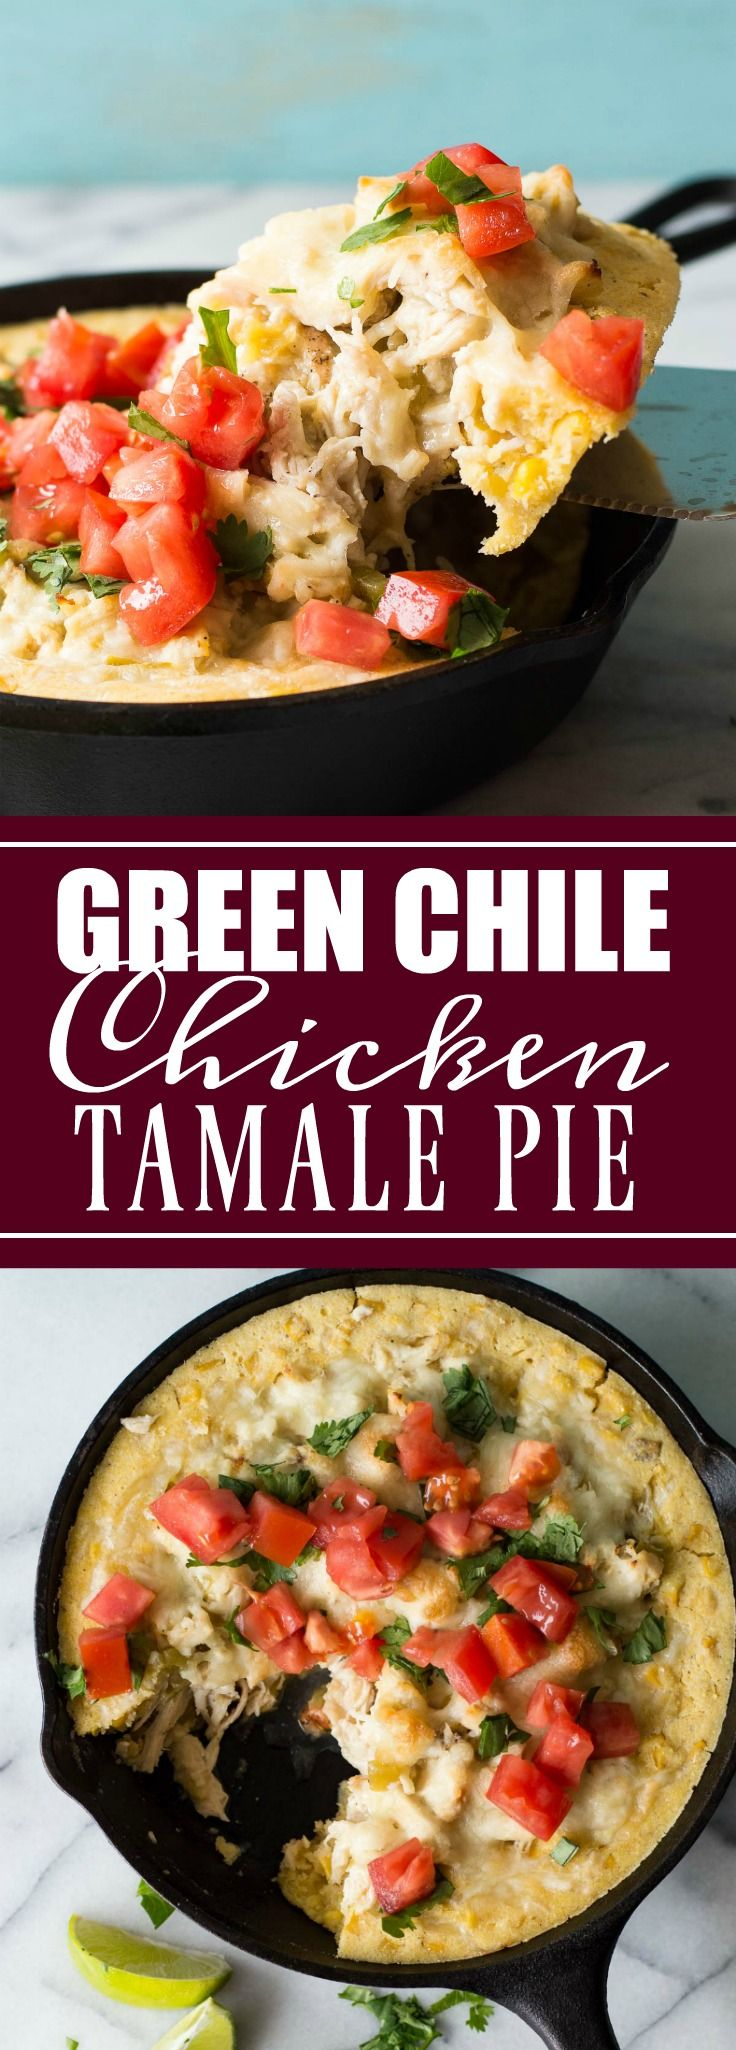 Green Chile Chicken Tamale Pie